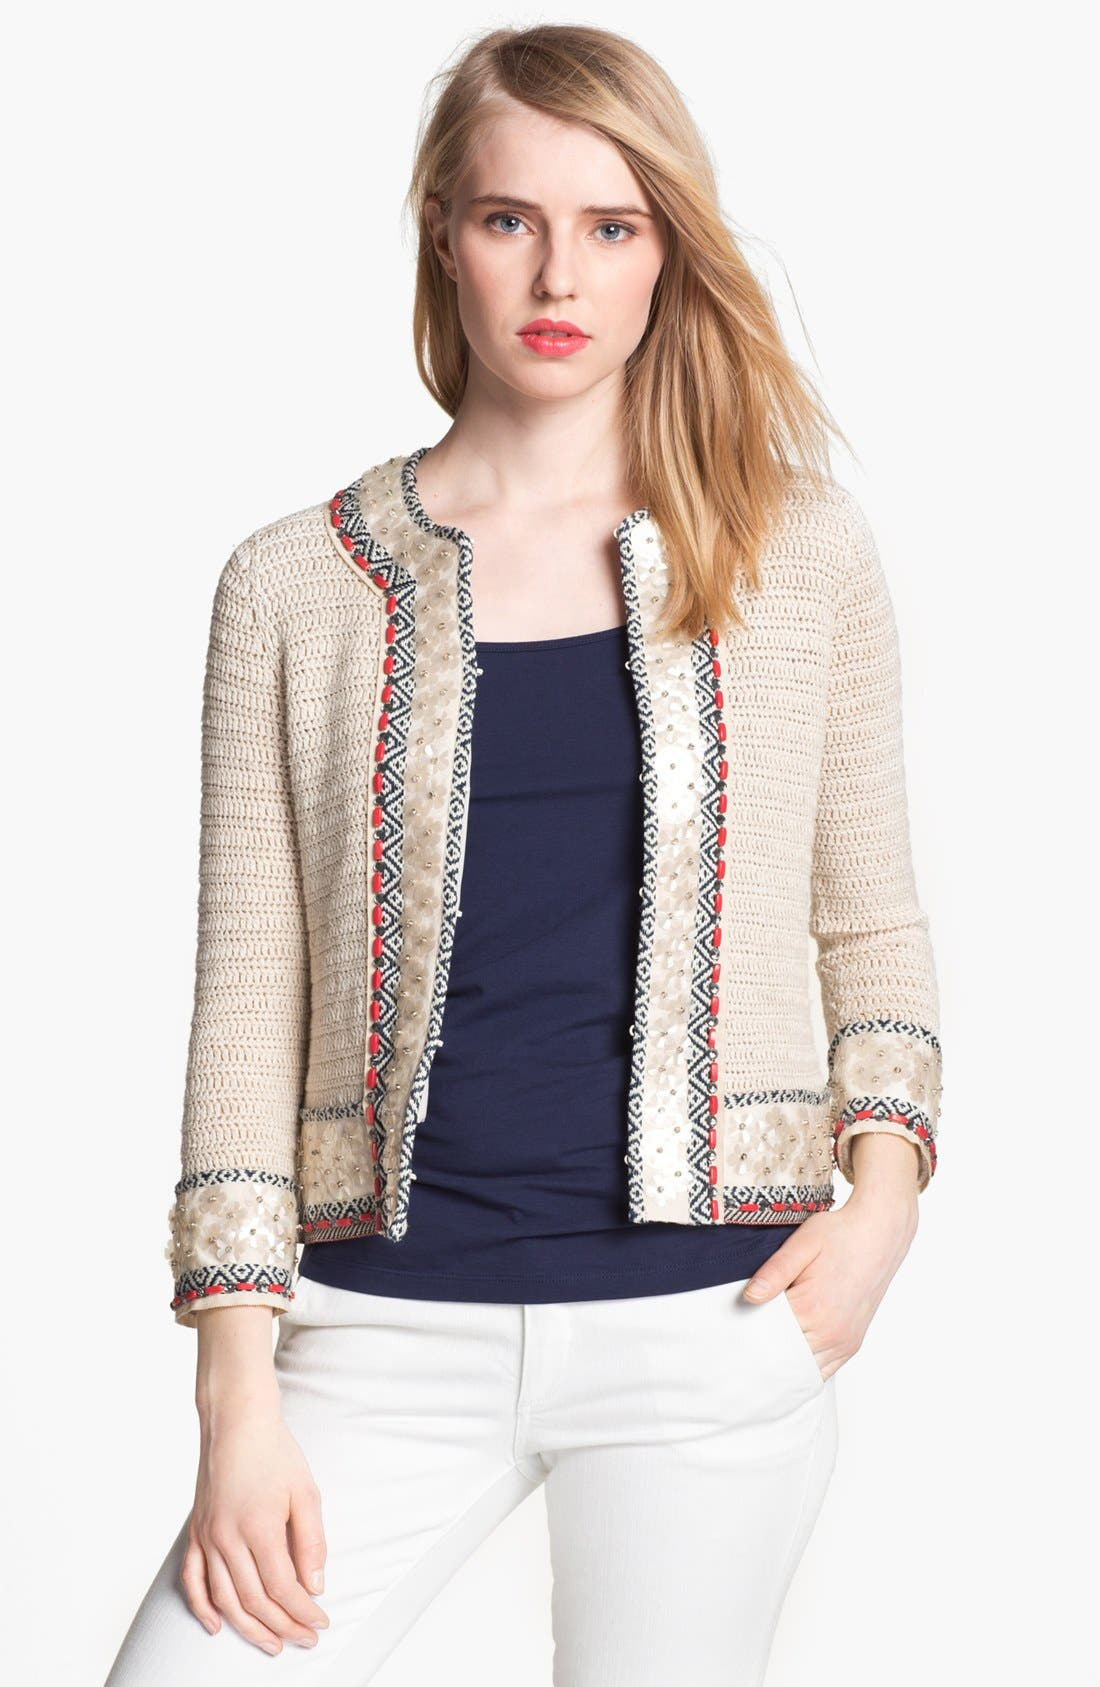 Main Image - Tory Burch 'Donovan' Embellished Jacket